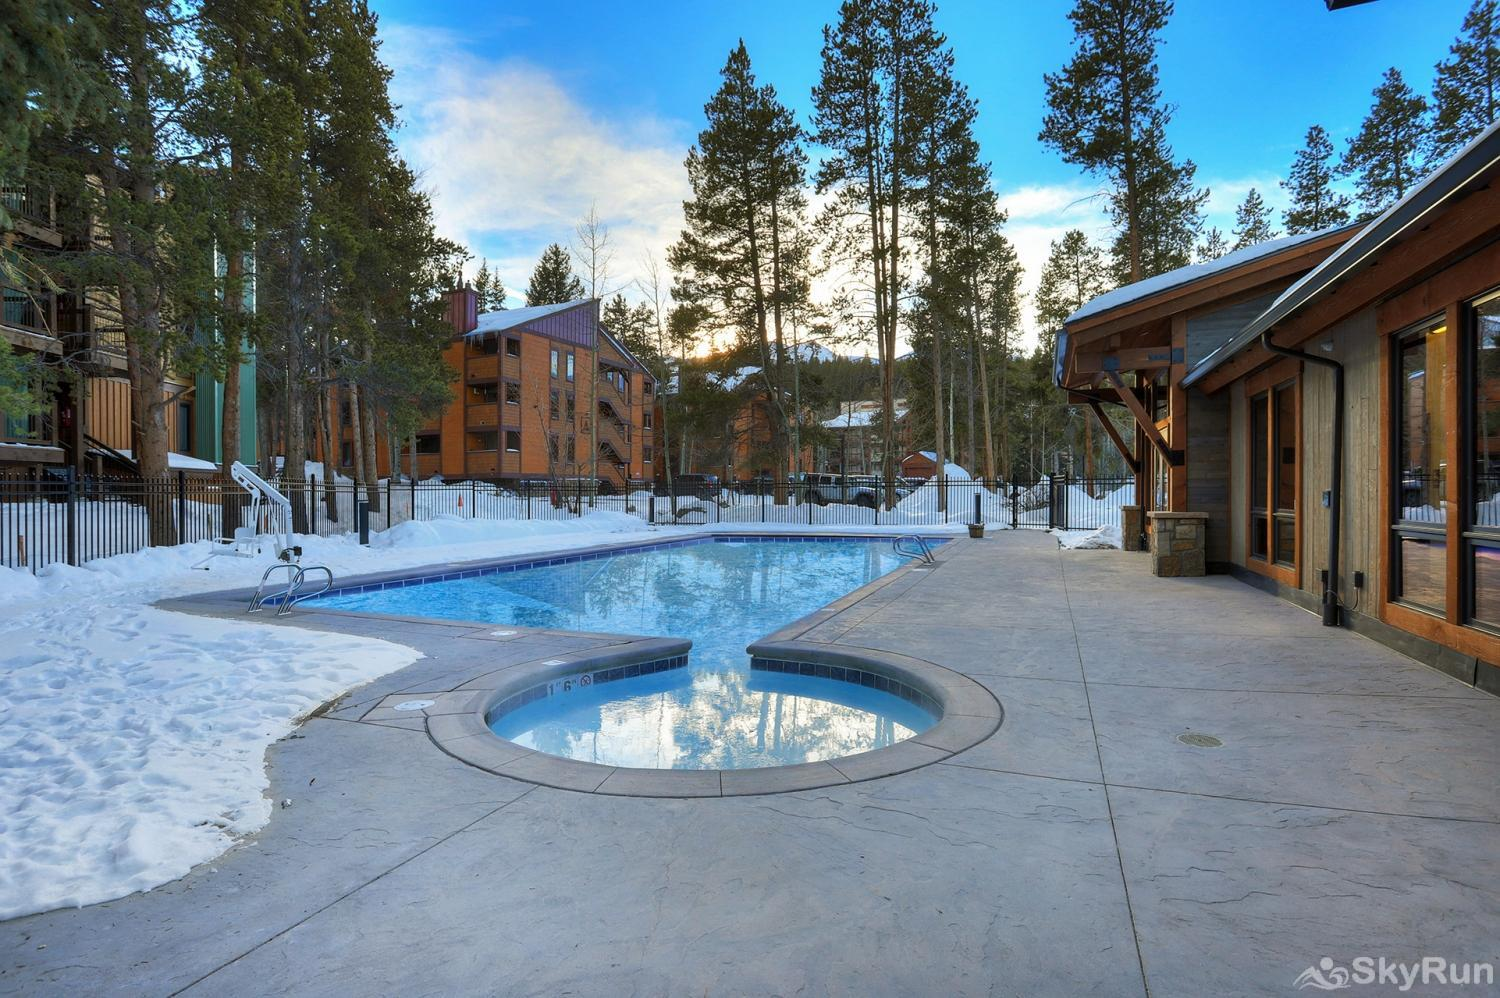 The Lift C11 Outdoor heated pool and hot tubs at the Columbine Pool Complex